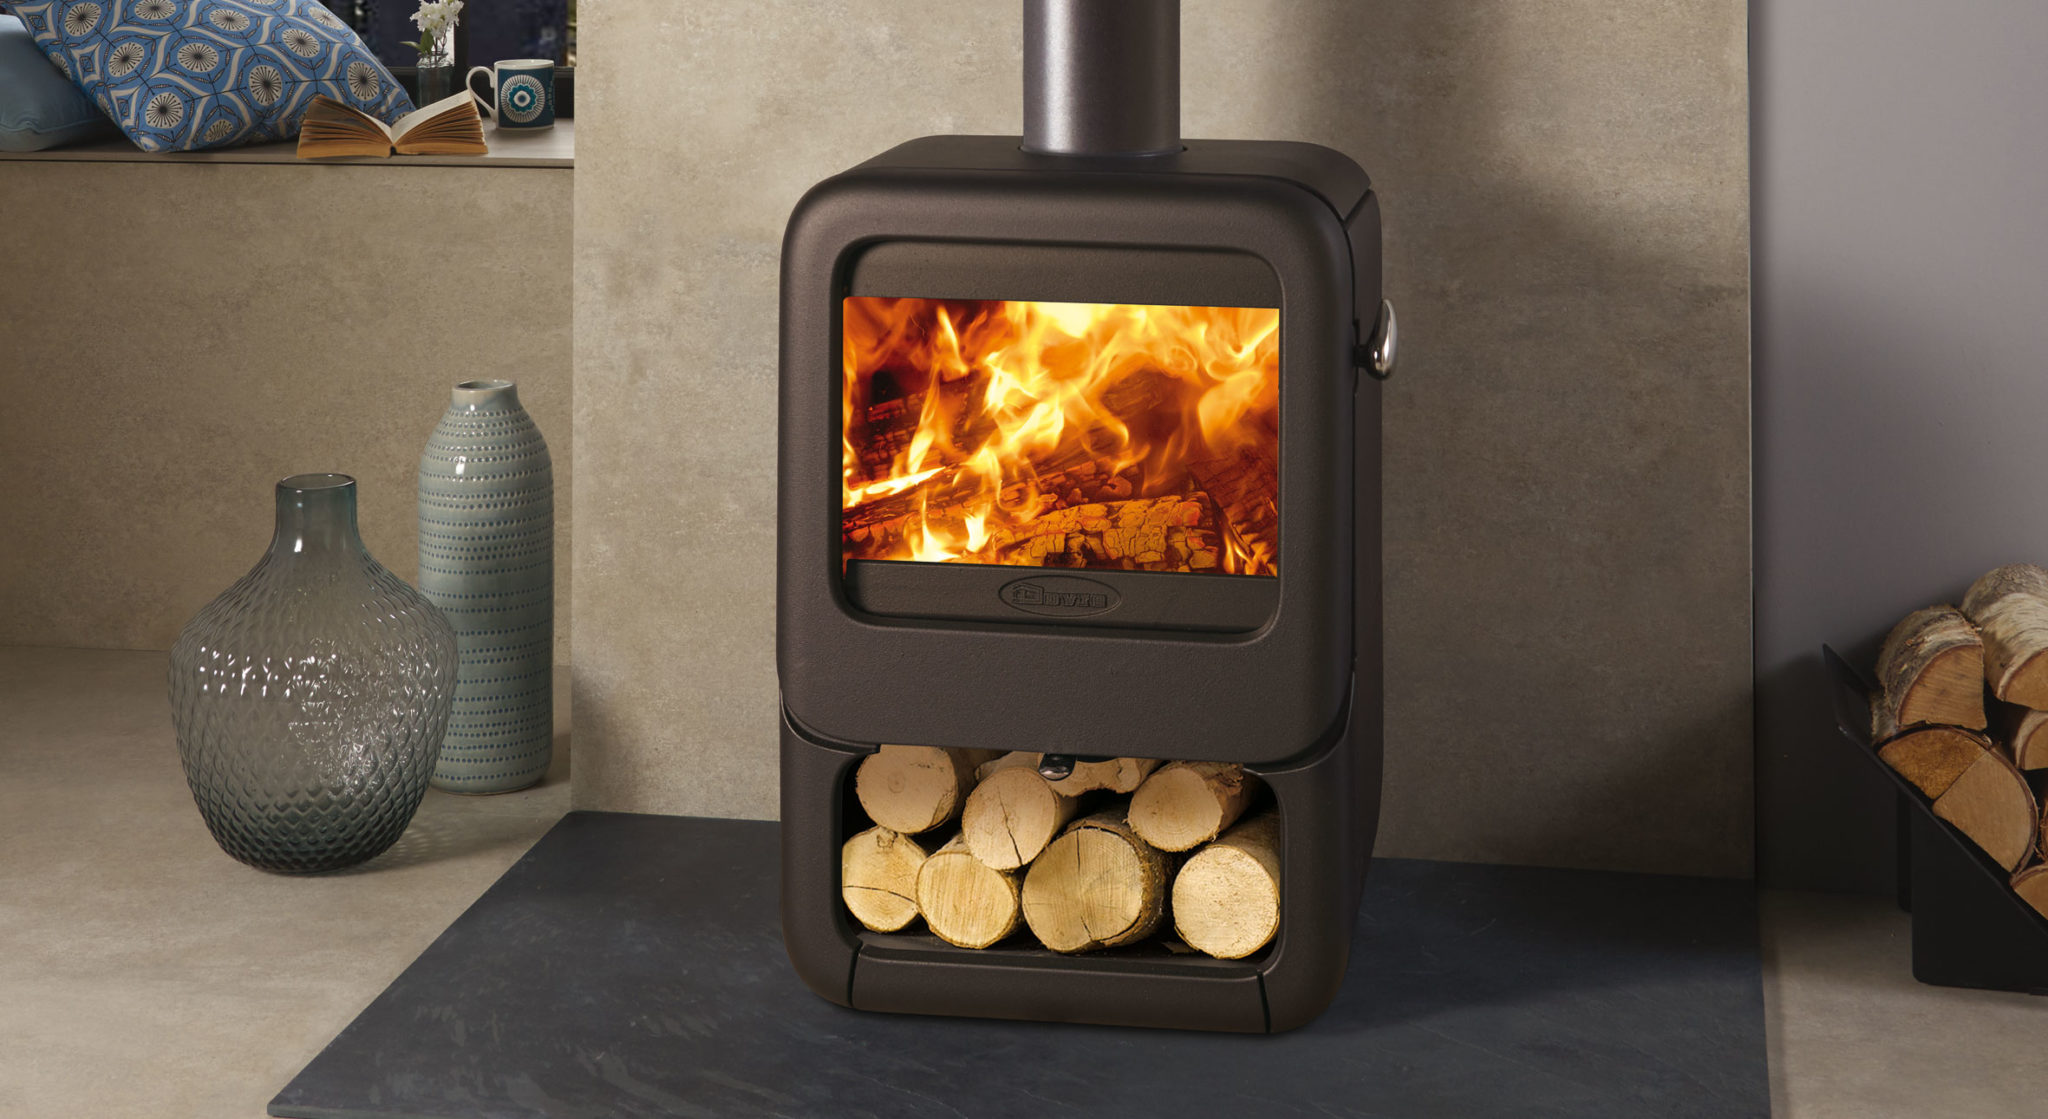 Dovre's Latest Wood Burning Stove is Solid as a Rock